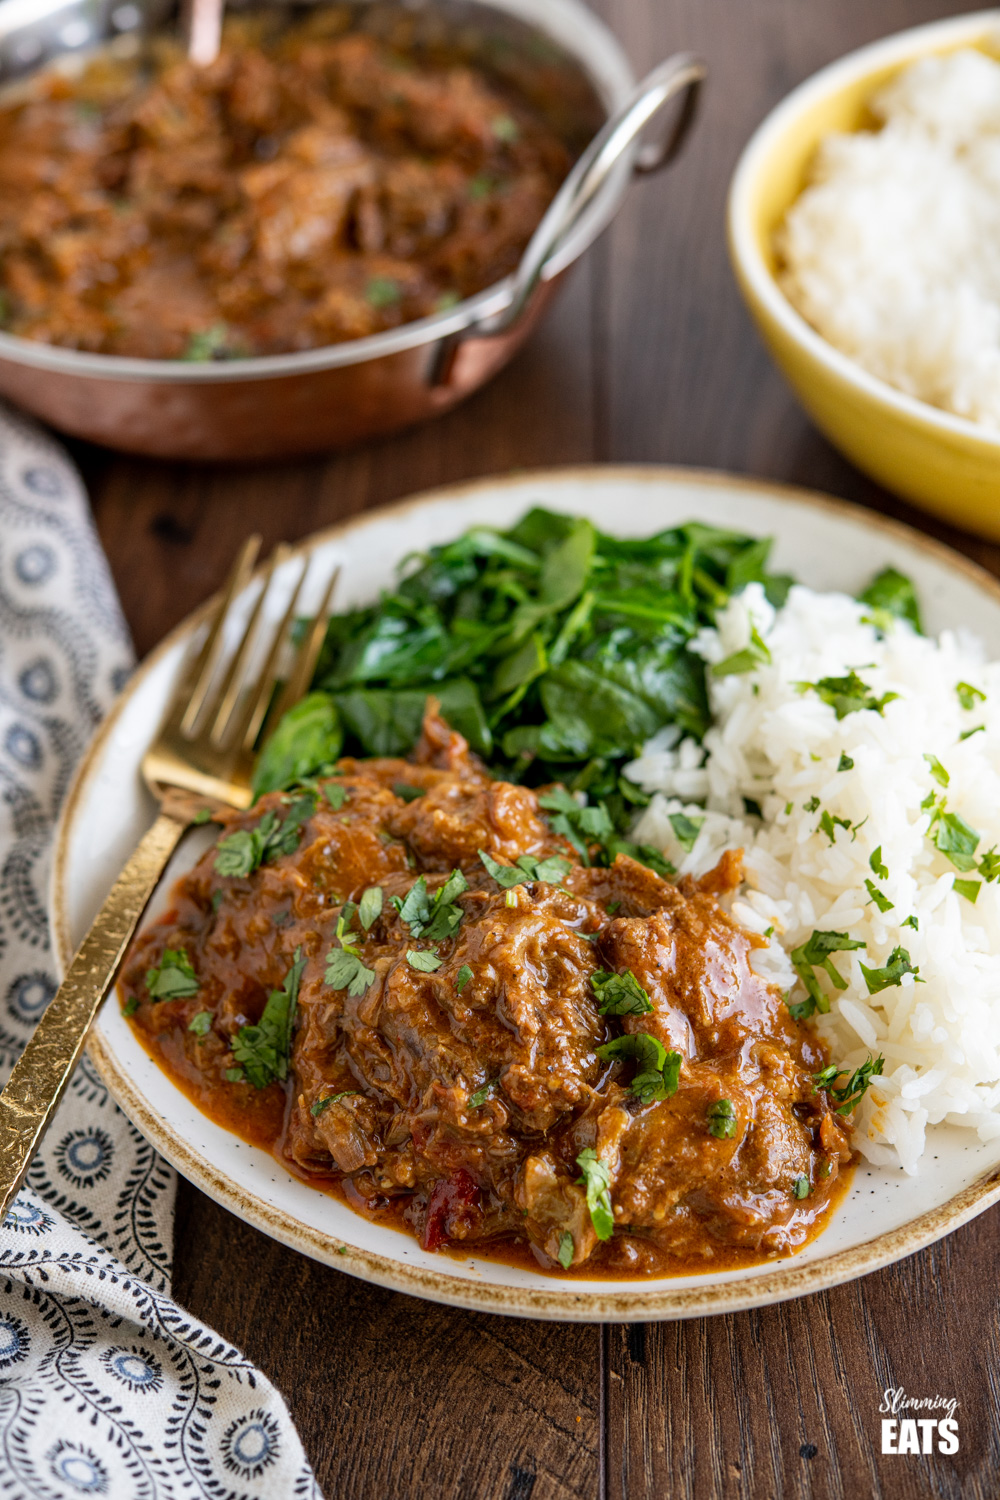 lamb bhuna on beige and white plate with rice, spinach and sprinkled with coriander